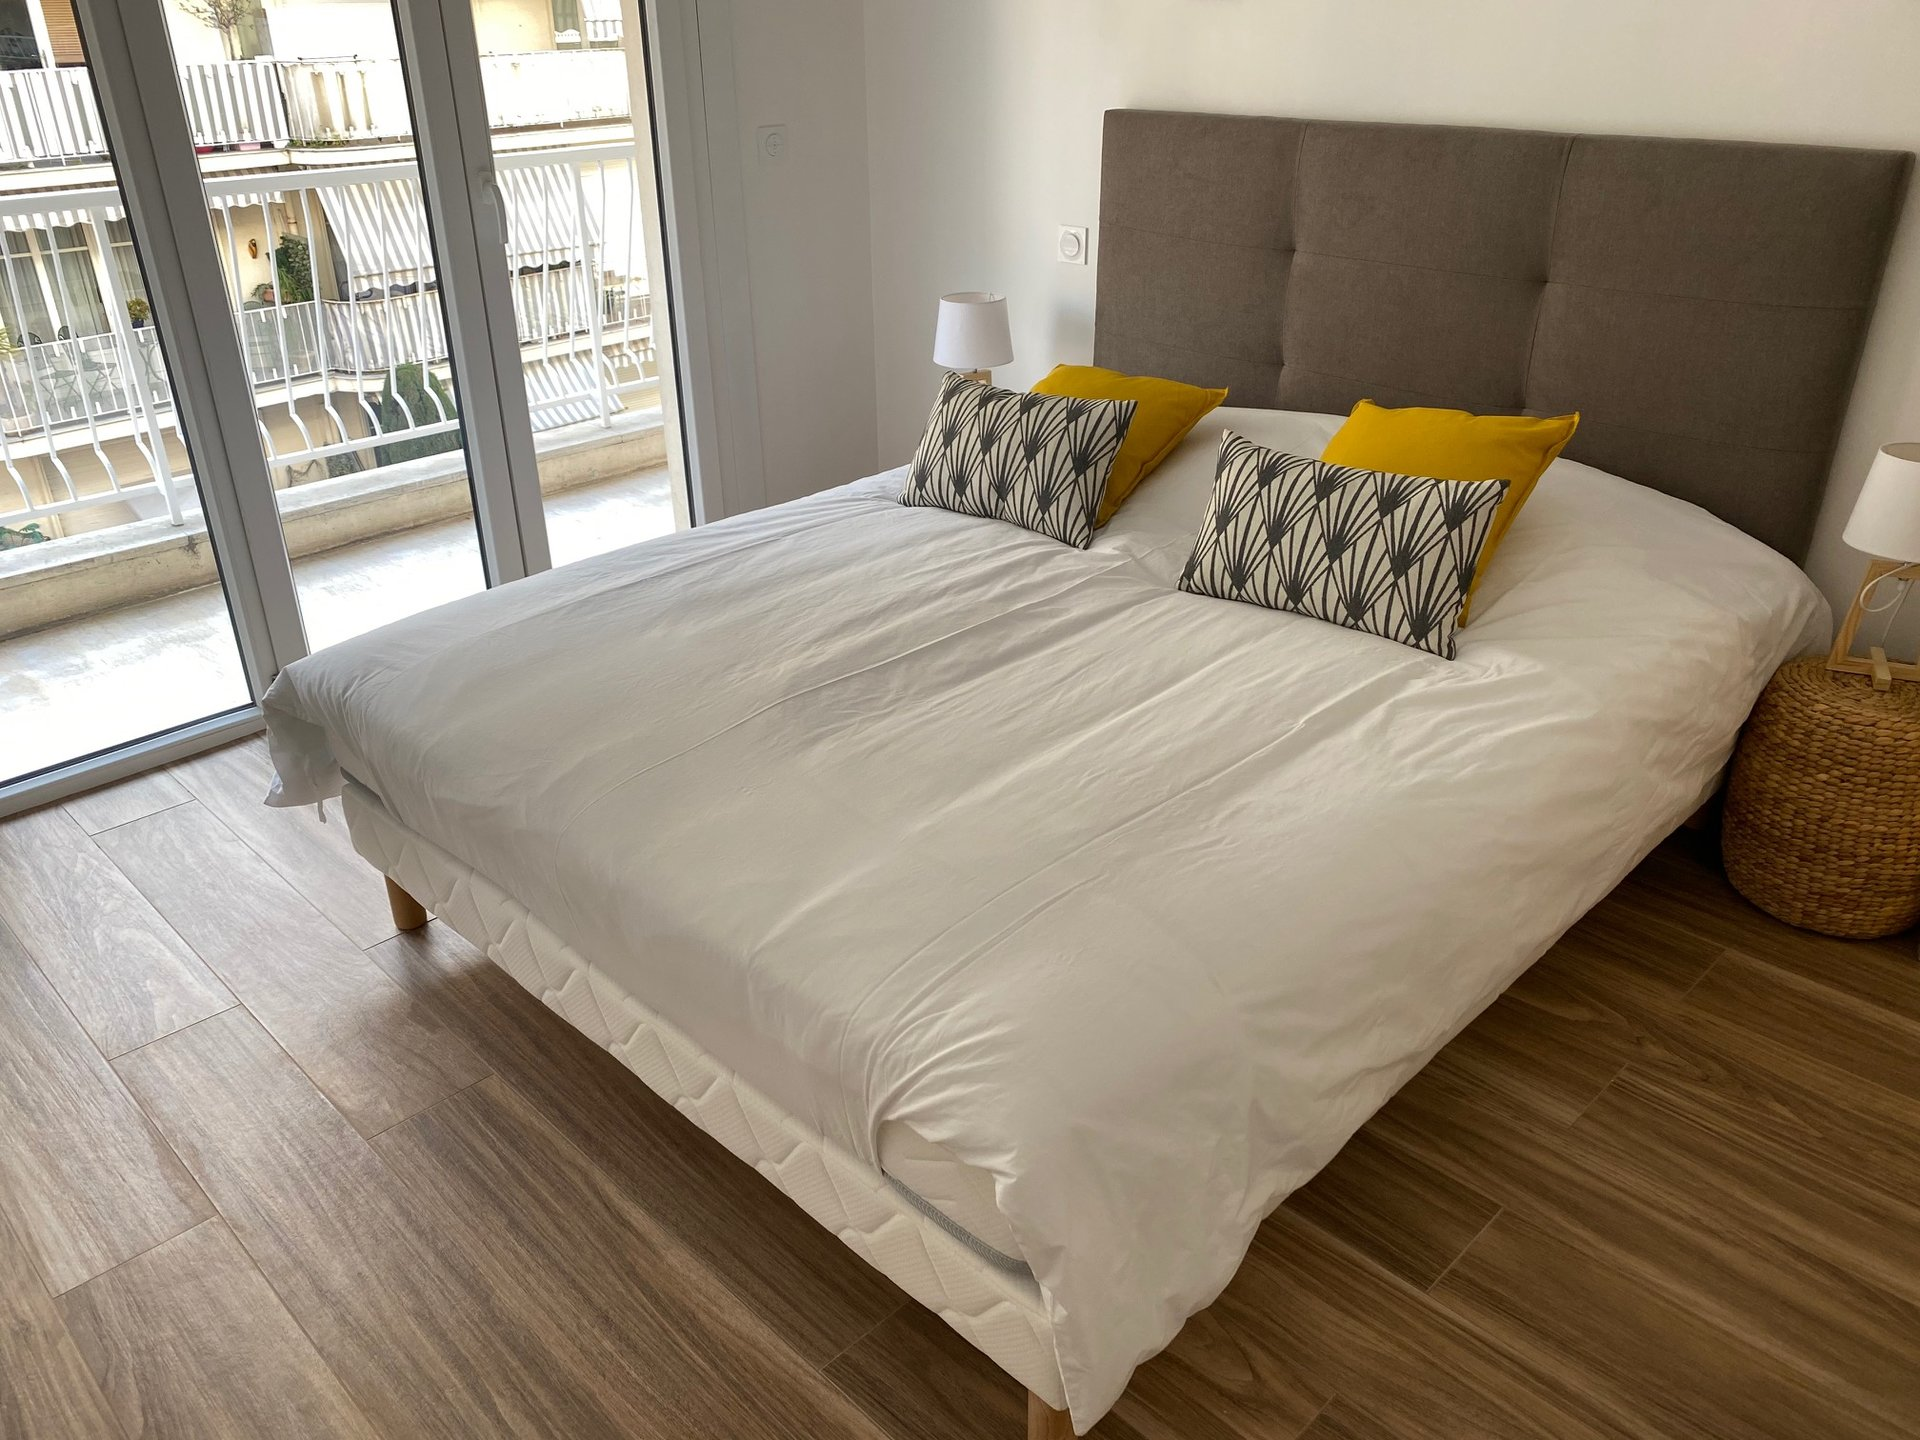 LE CANNET SALE 2 ROOMS RENOVATED CLOSE TO SHOPS AND TRANSPORT